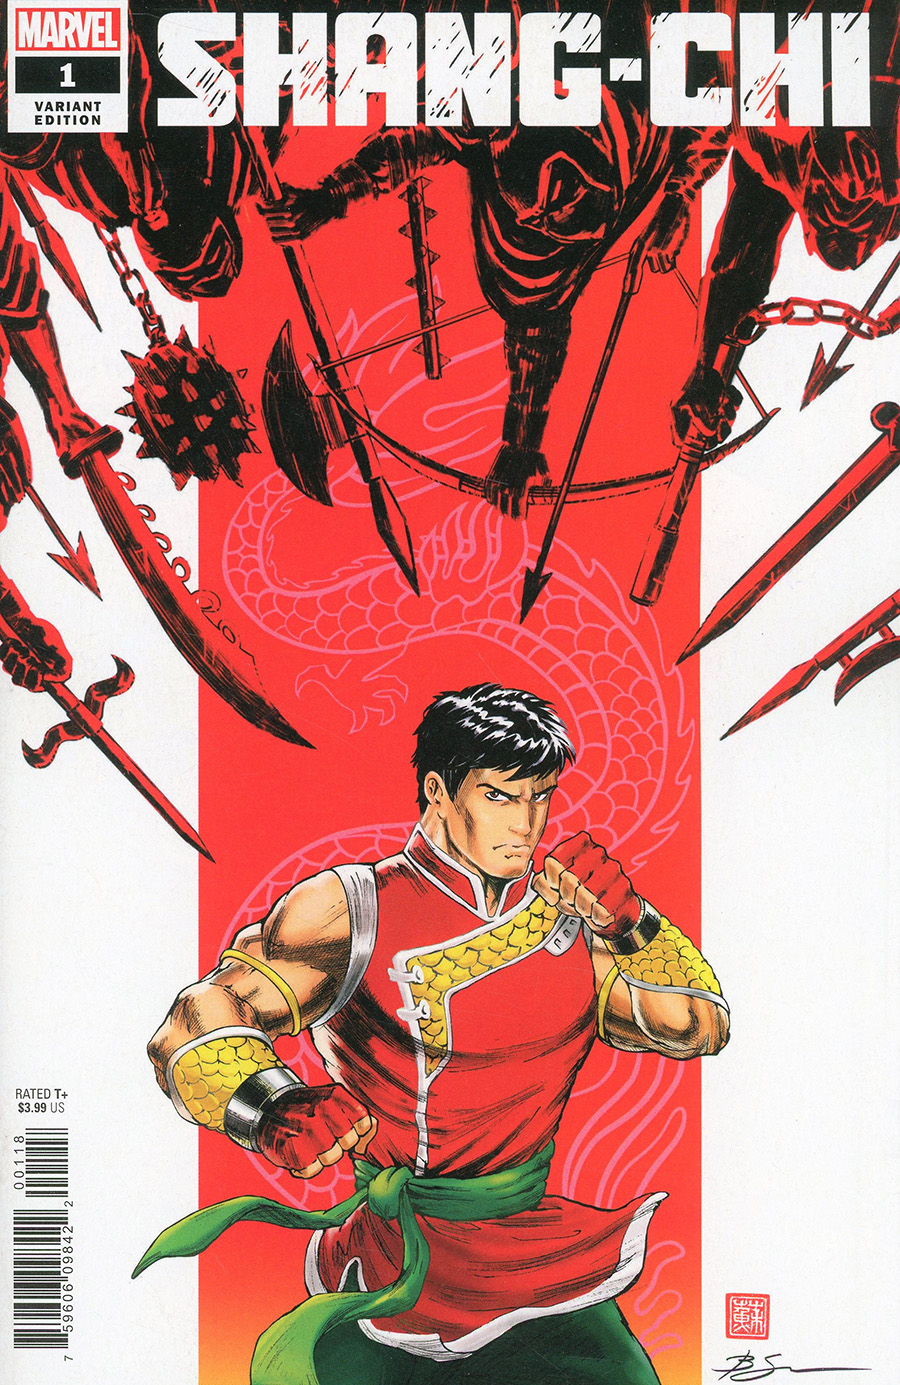 Shang-Chi #1 Cover F Variant EJ Su Cover